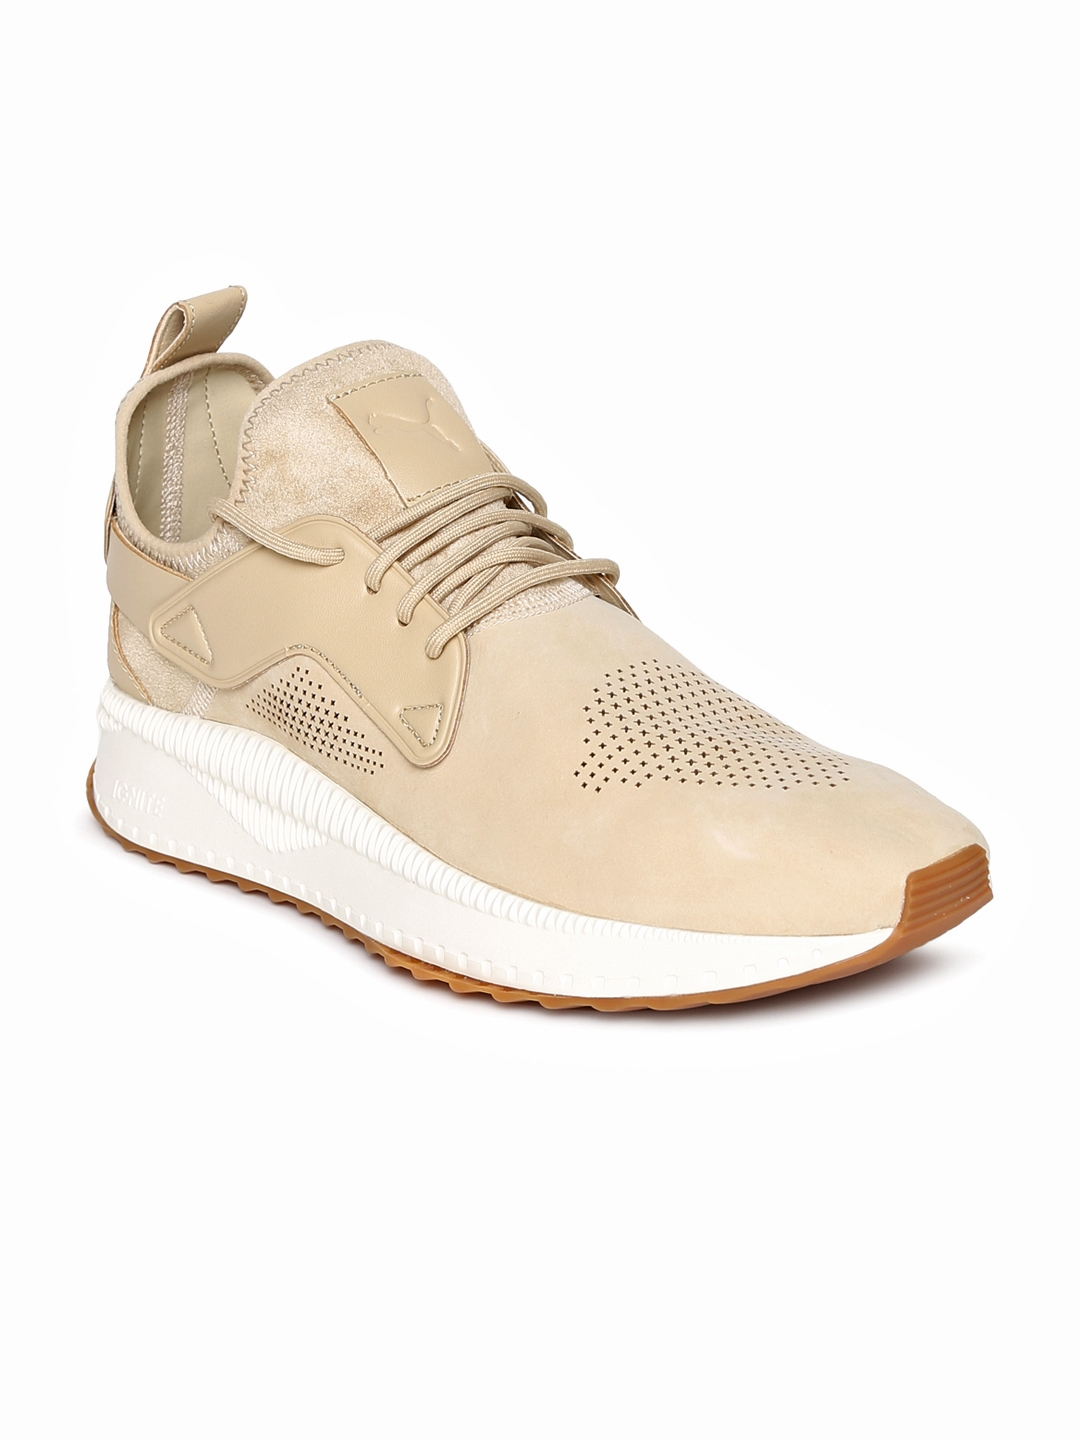 5942d2a6313639 Buy Puma Men Peach   White TSUGI Cage Roasted Sneakers - Casual ...